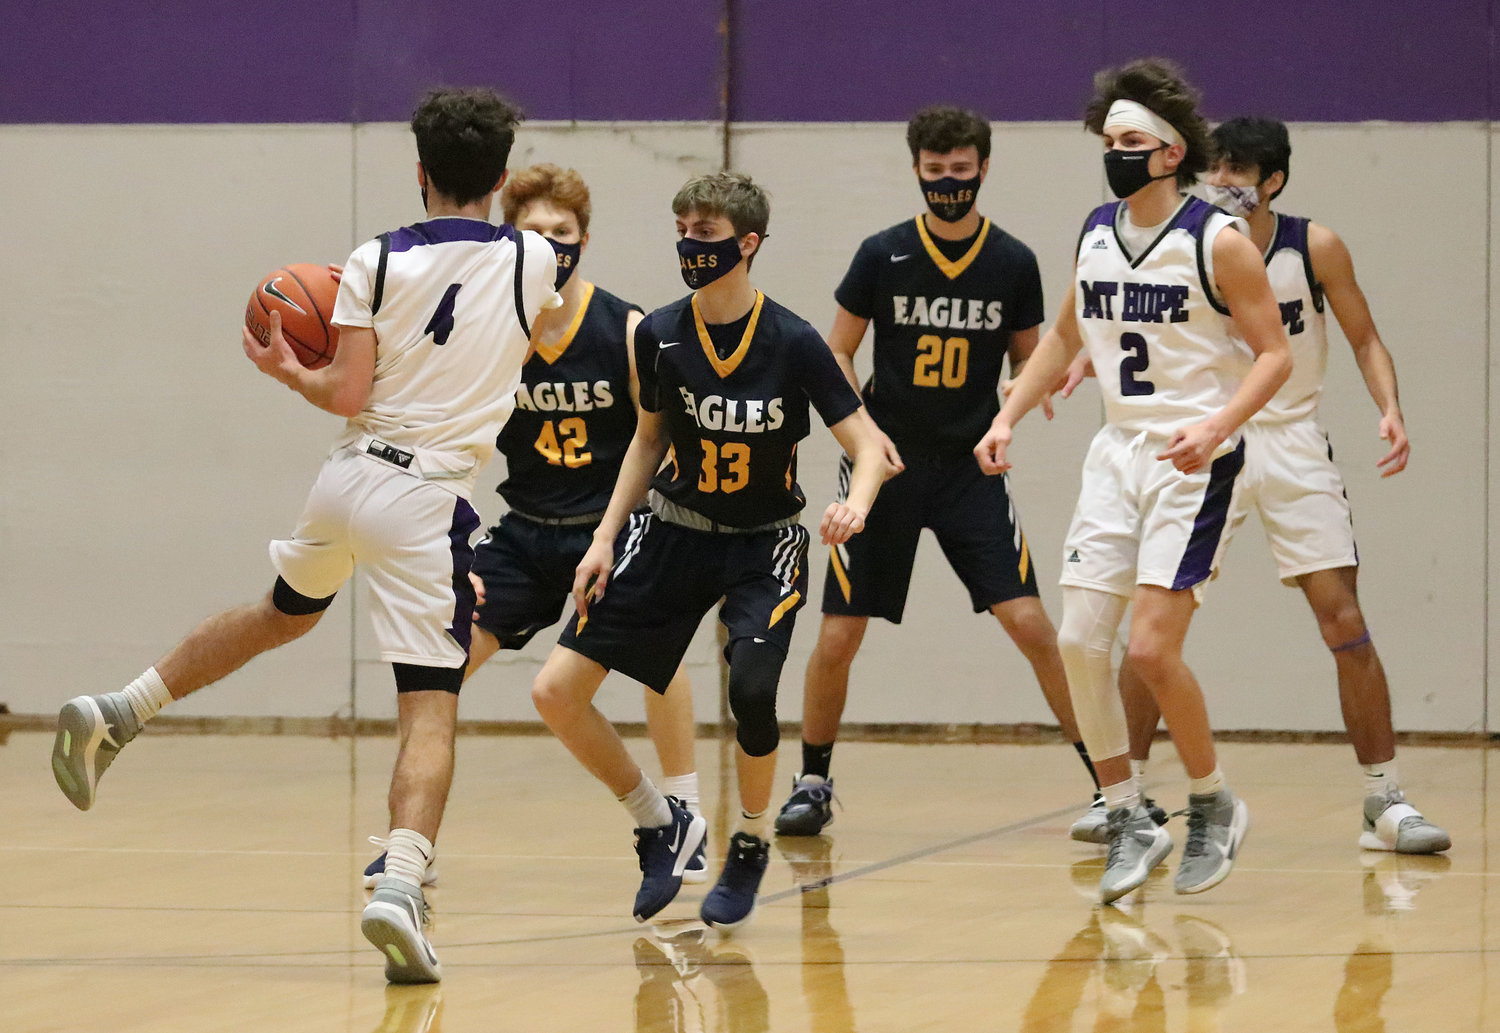 Barrington defenders Brigham Dunphy (left), Sean Bonneau, and Nick Scandura get into their defense as Mt. Hope's Parker Camelo brings up the ball during a non-league game in Bristol on Monday night. Barrington won 77-40.